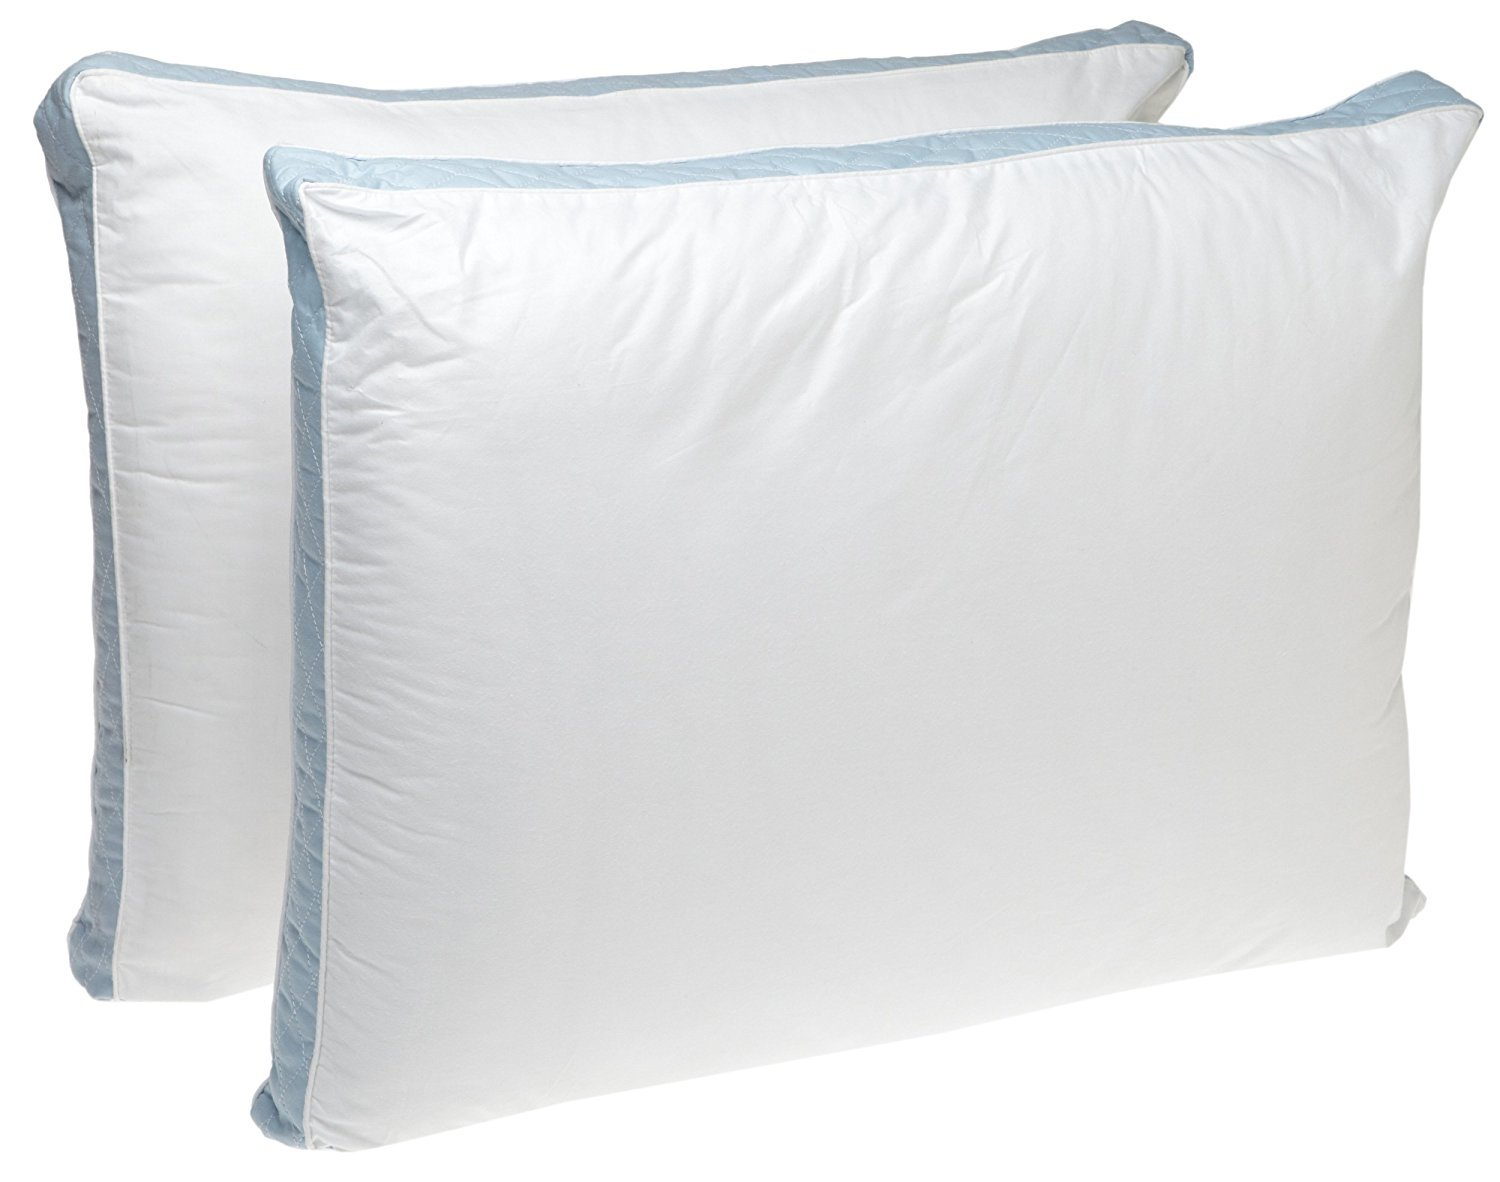 Perfect Fit | Gusseted Quilted Pilllow, Hypoallergenic, 233 Thread-Count, Extra Firm Density, Set of 2 (Side Sleeper, King) 715061